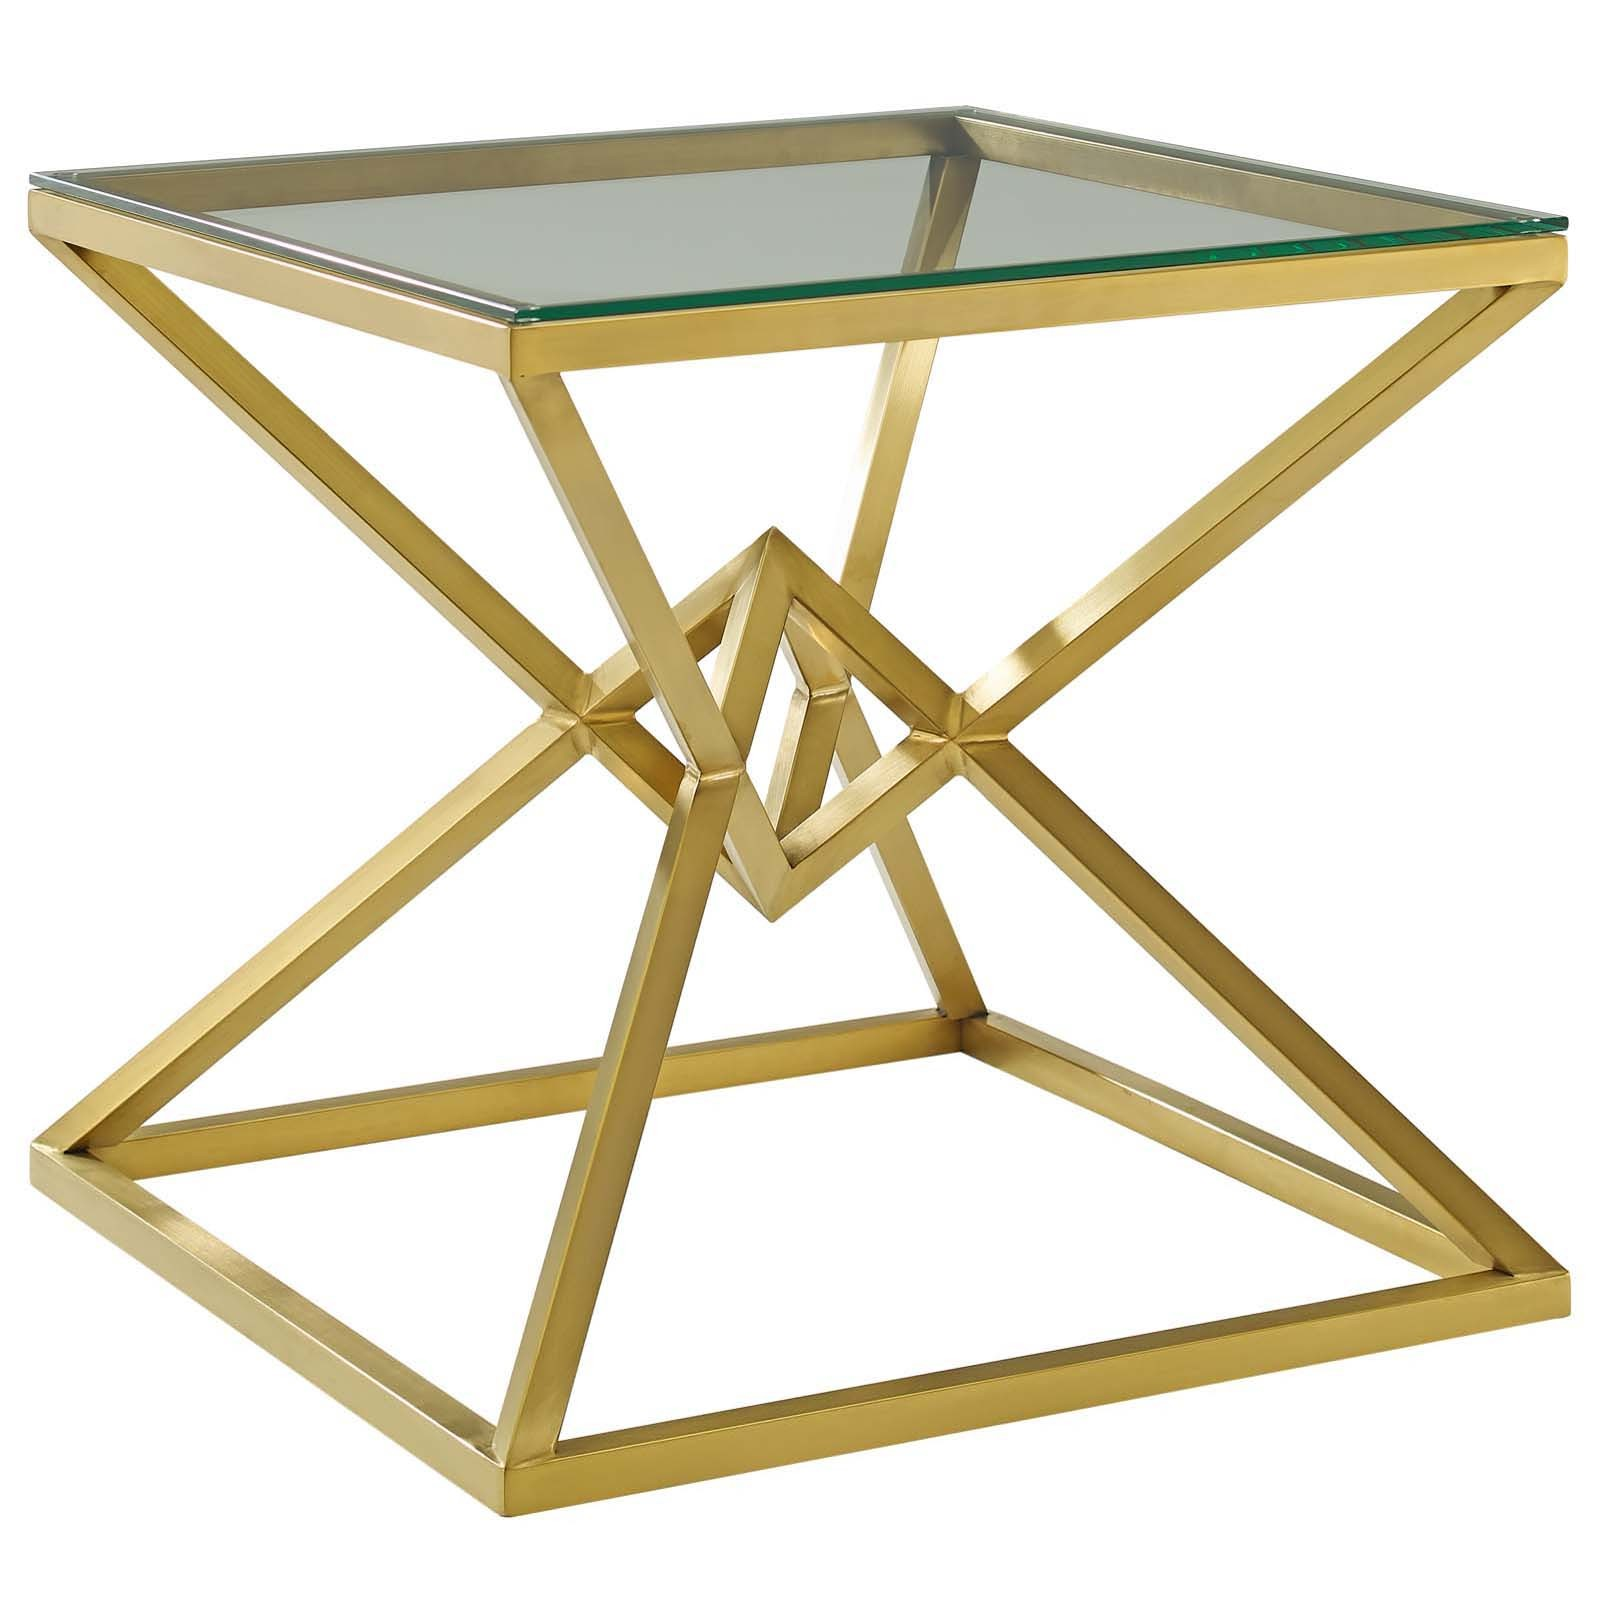 "Point 25.5"" Brushed Gold Metal Stainless Steel Side Table in Gold"